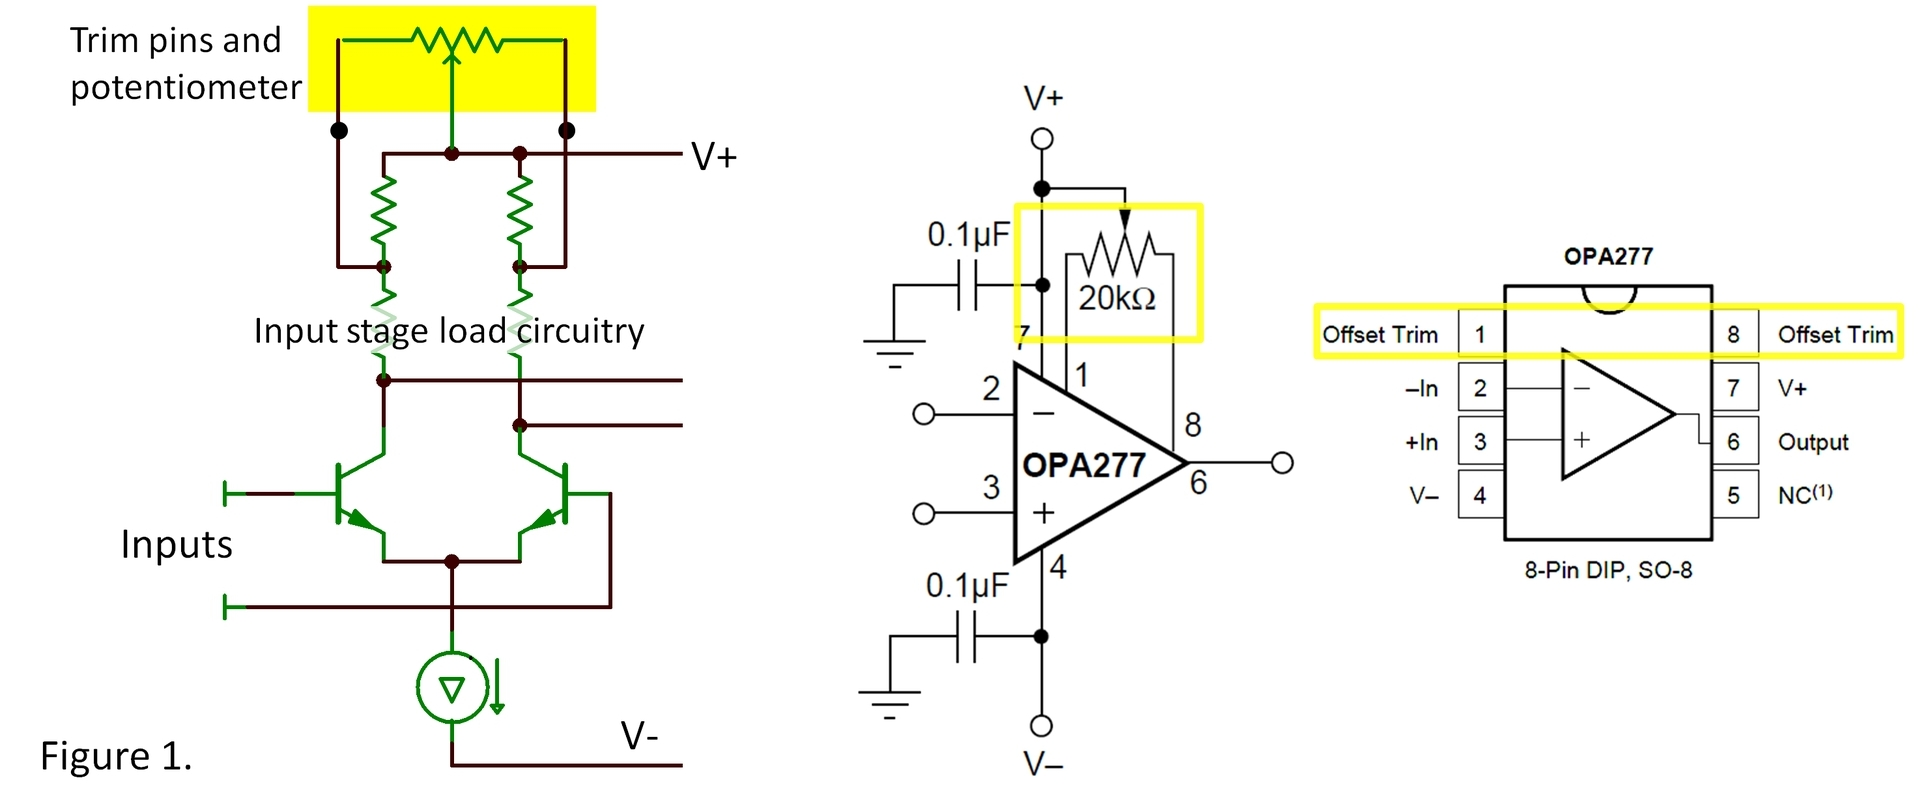 Where Are The Trim Pins Signal Archives Ti E2e Community Circuit Actually Signals That Go To Each Of Other Circuits Figure 1 Shows A Common Type Internal Circuitry Connect Tapped Portion Input Stage Load